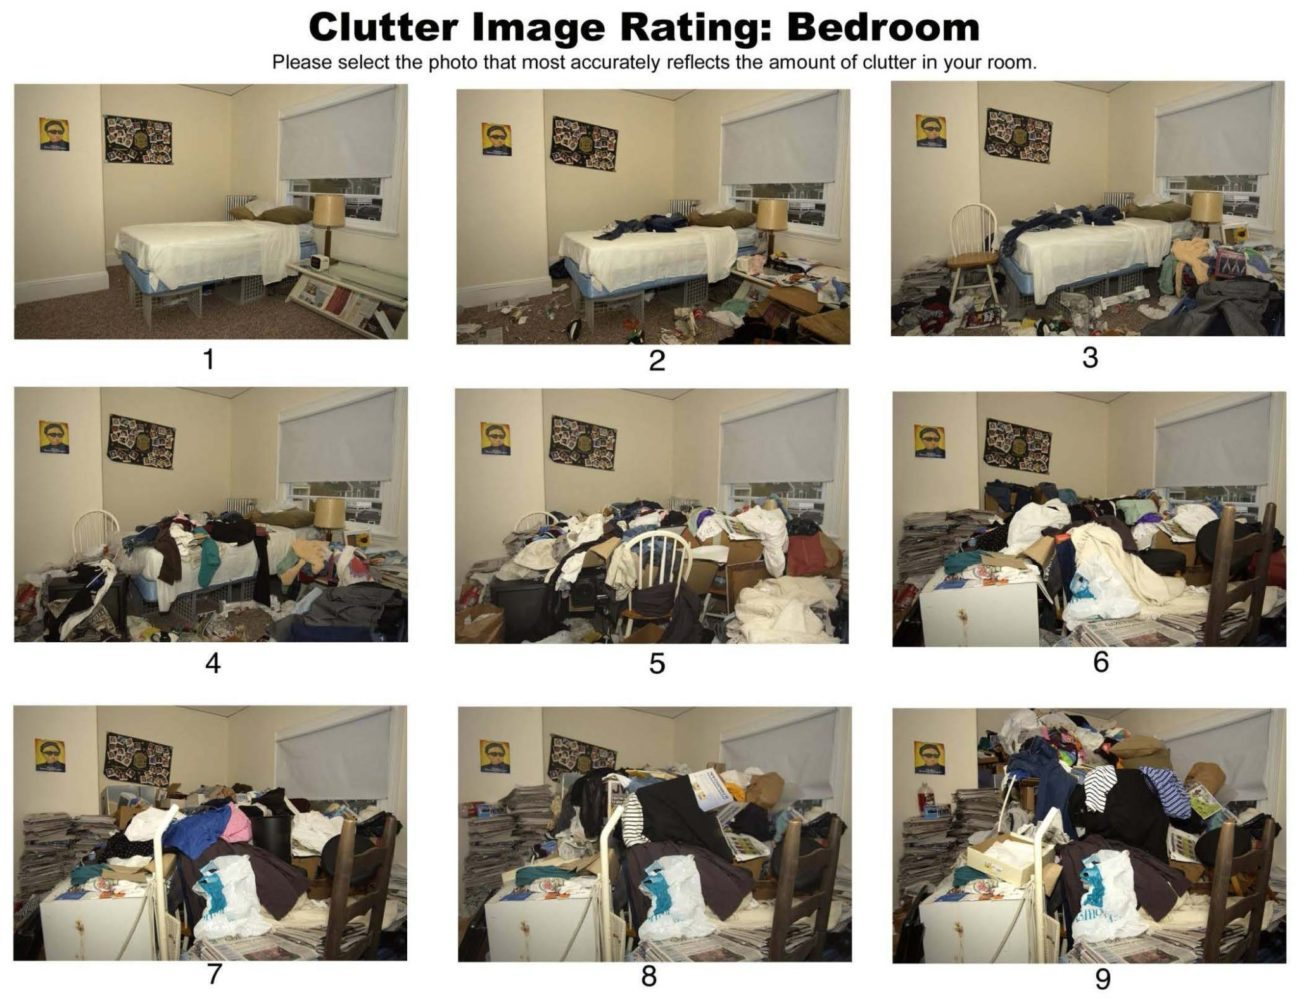 Clutter Image Rating: Bedroom. Photo Courtesy of IOCDF.